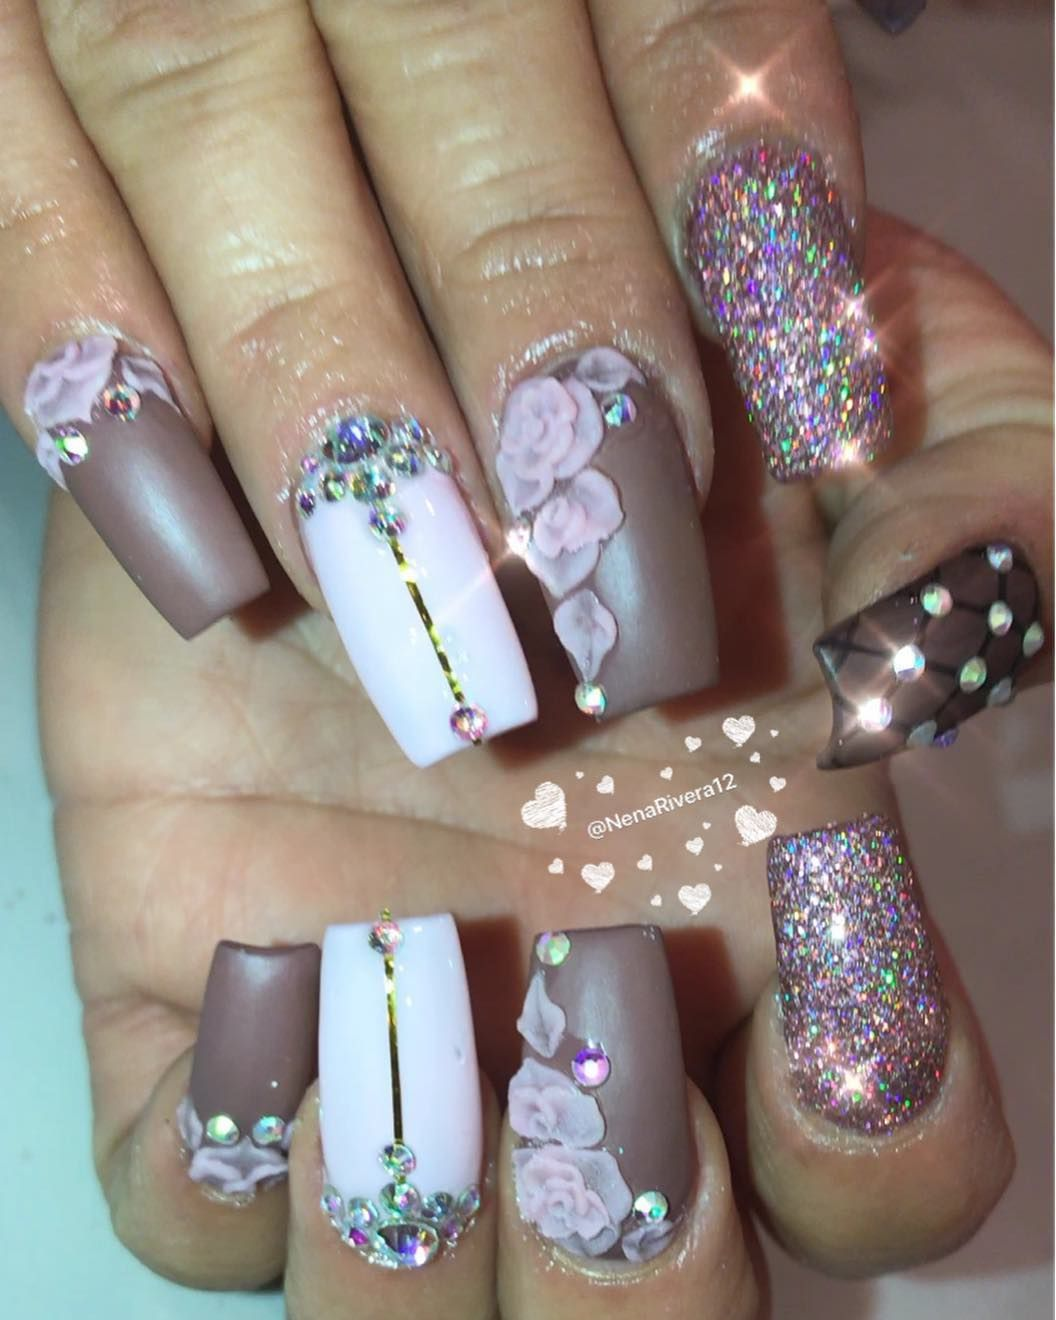 How Do People These Nail Art Designs They Are So Beautiful